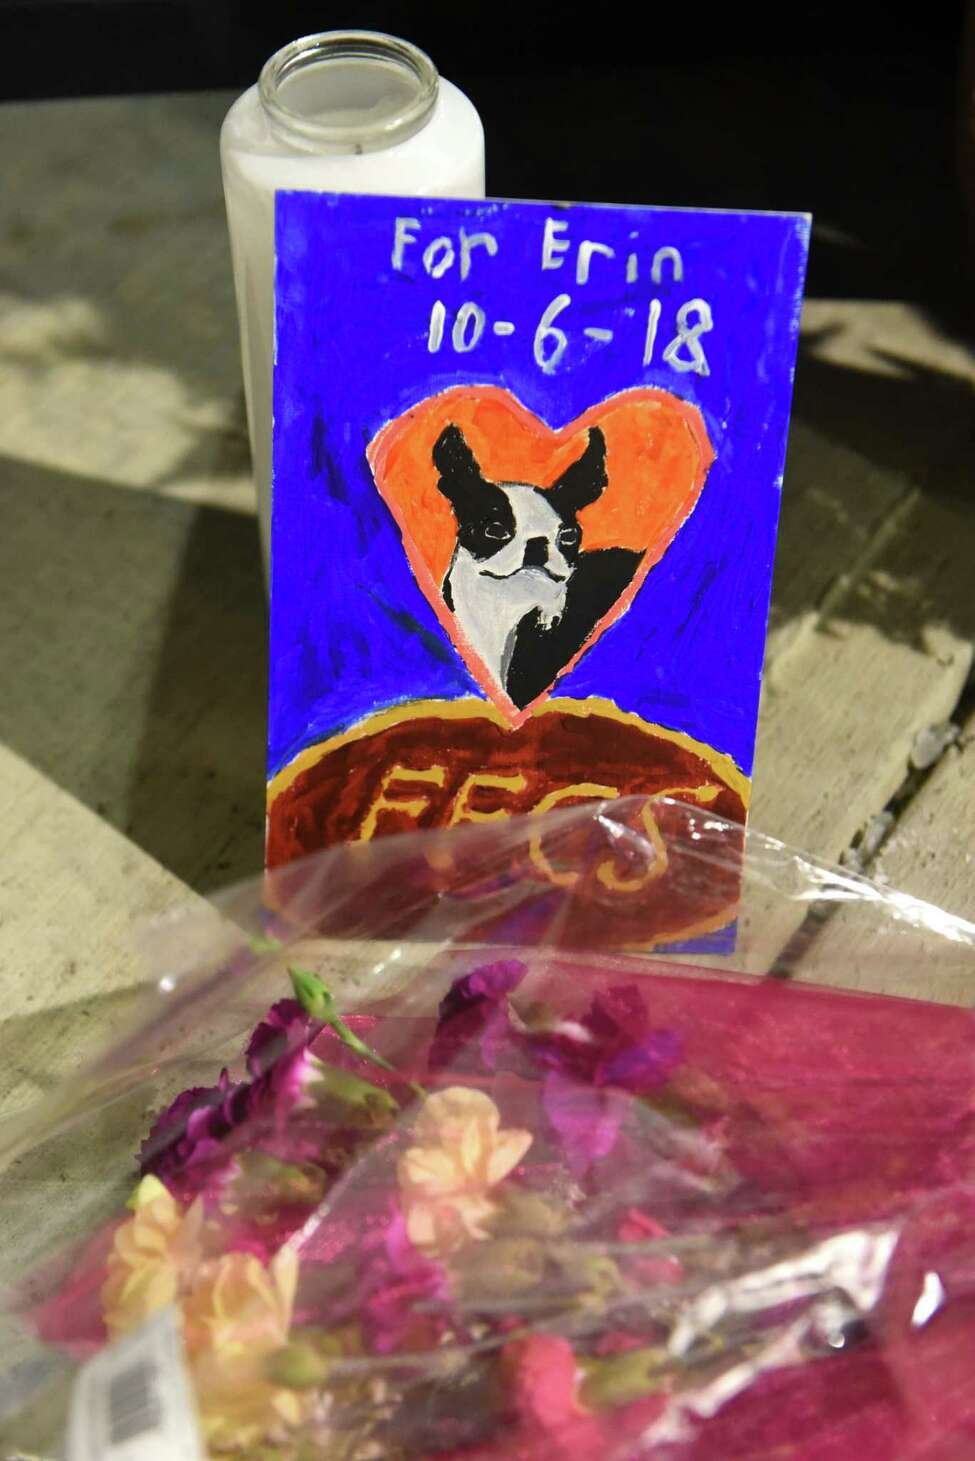 A hand made card and flowers are seen under the Amsterdam Strong banner at the end of a vigil for the victims of the limousine crash in Schoharie at The Mohawk Valley Gateway Overlook on Monday, Oct. 8, 2018 in Amsterdam, N.Y. (Lori Van Buren/Times Union)